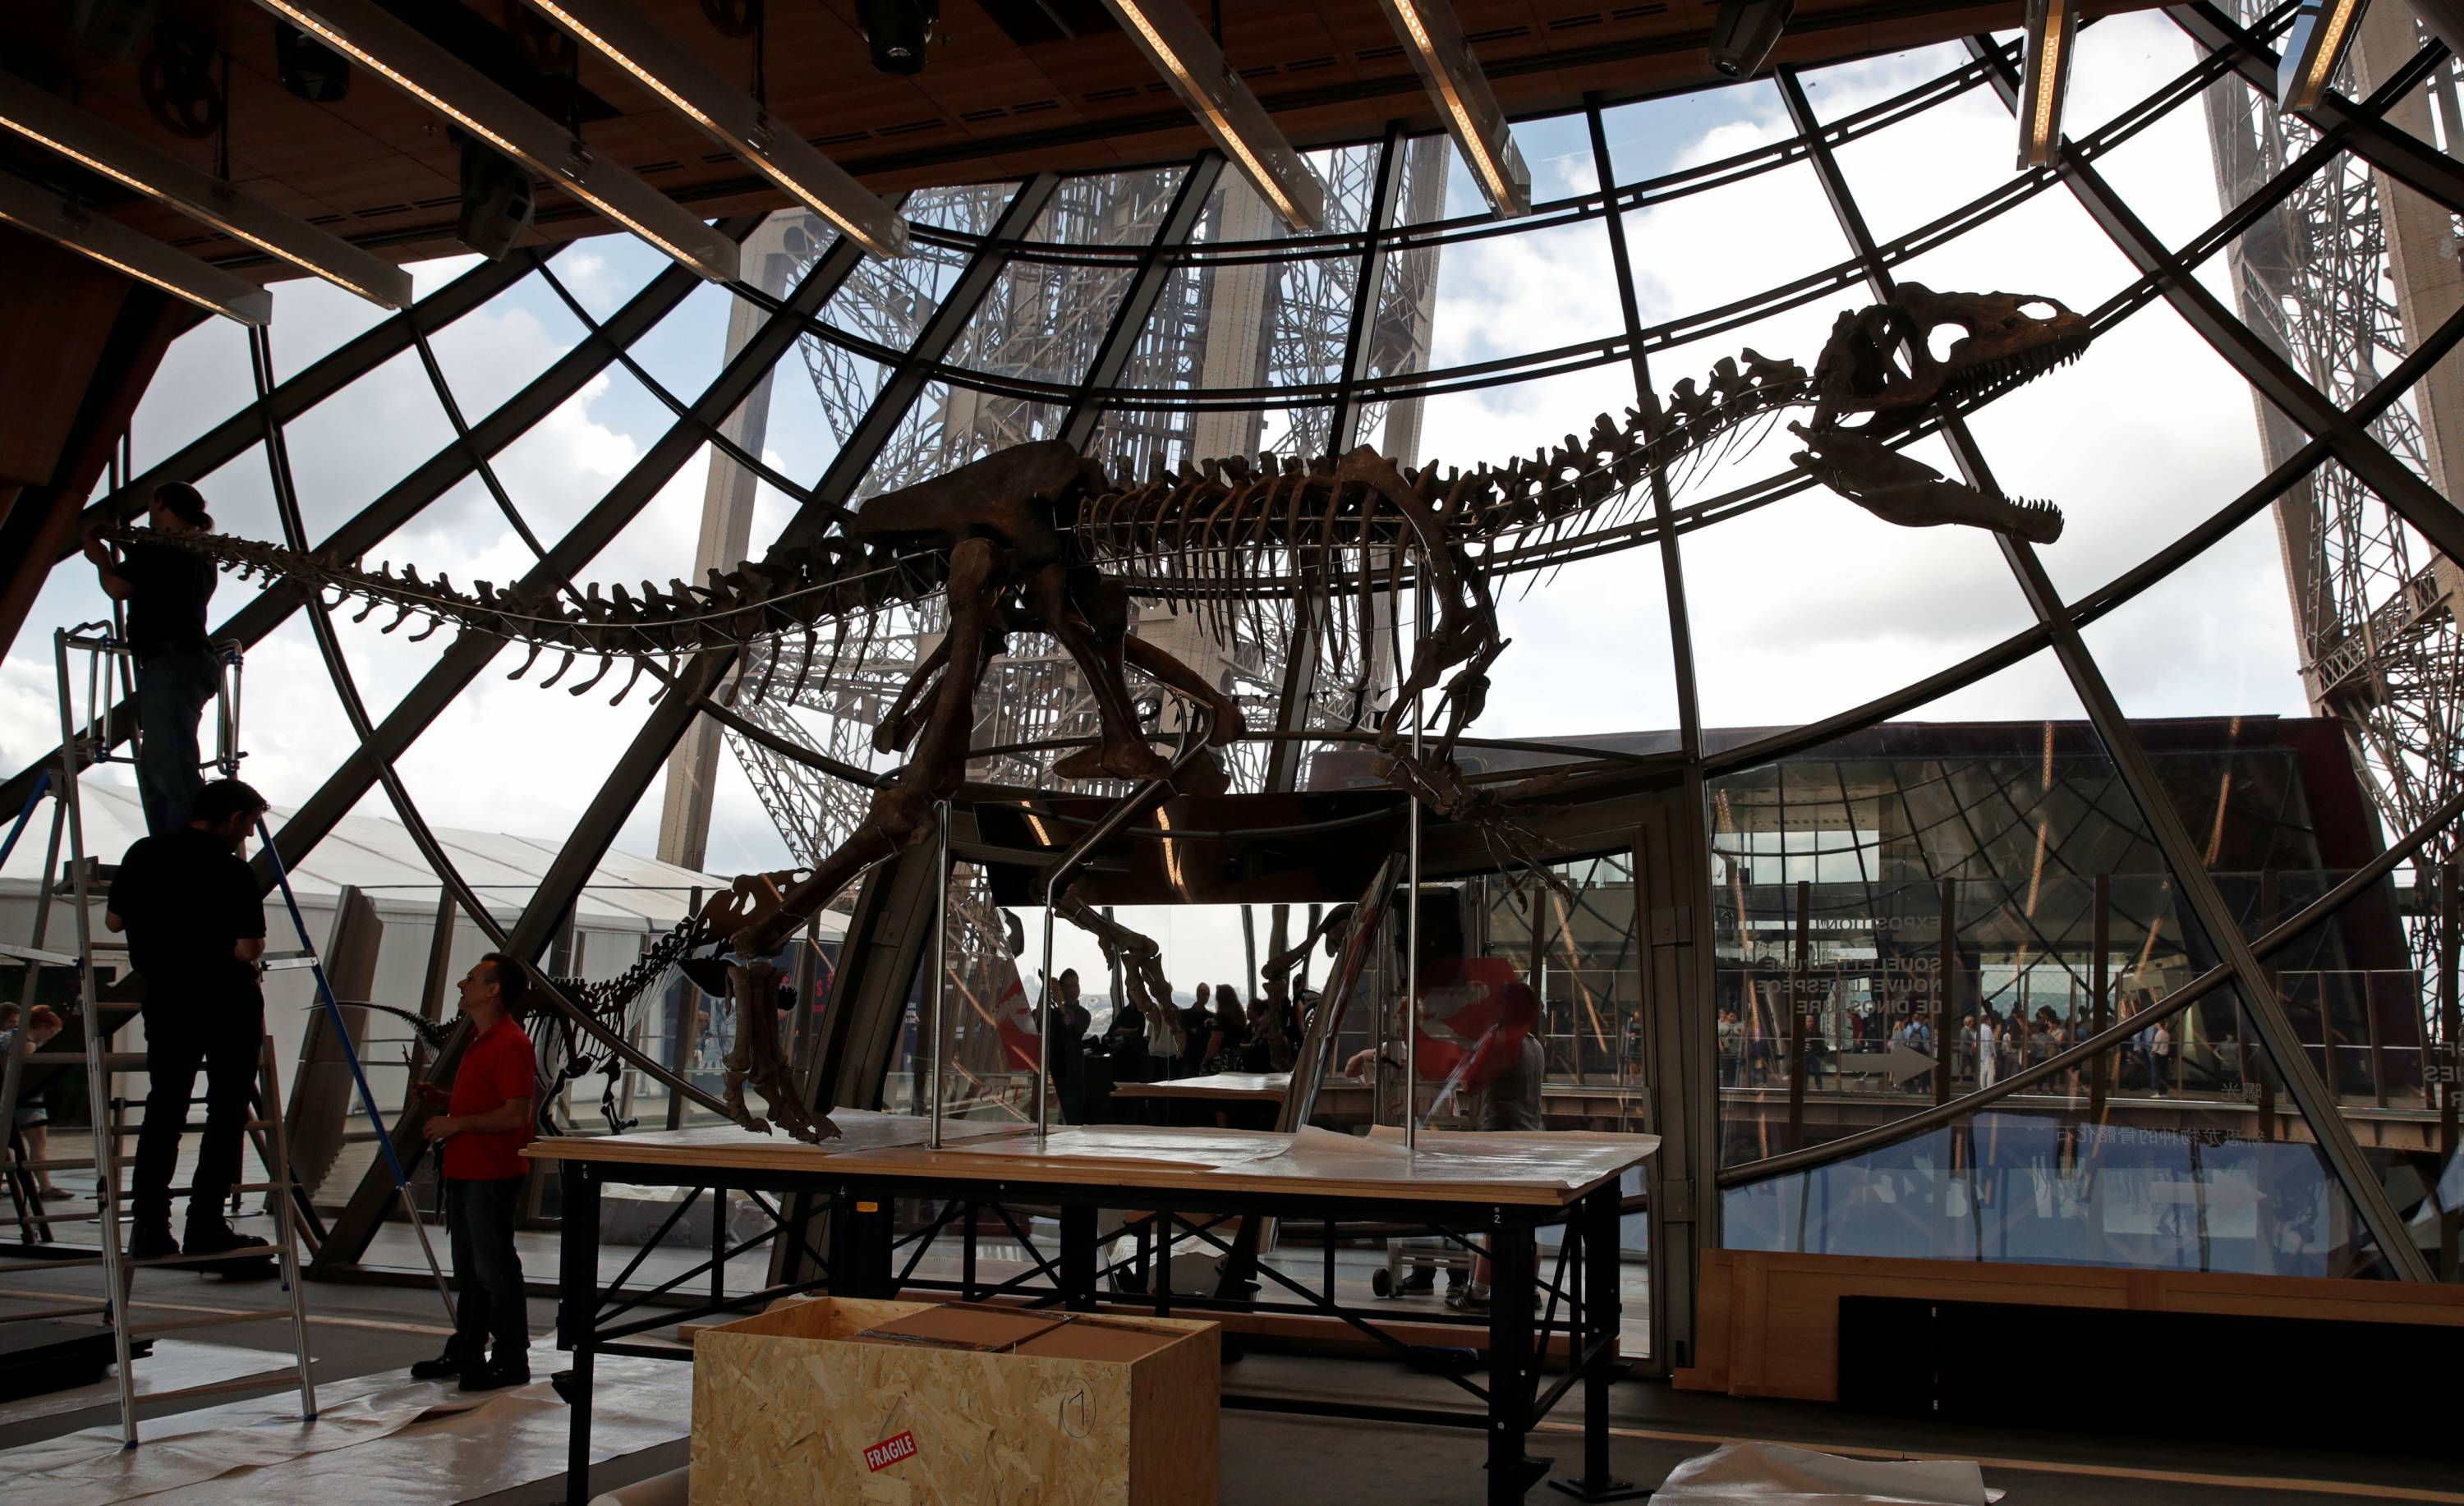 Workers reconstruct dinosaur fossil at the Eiffel tower, in Paris